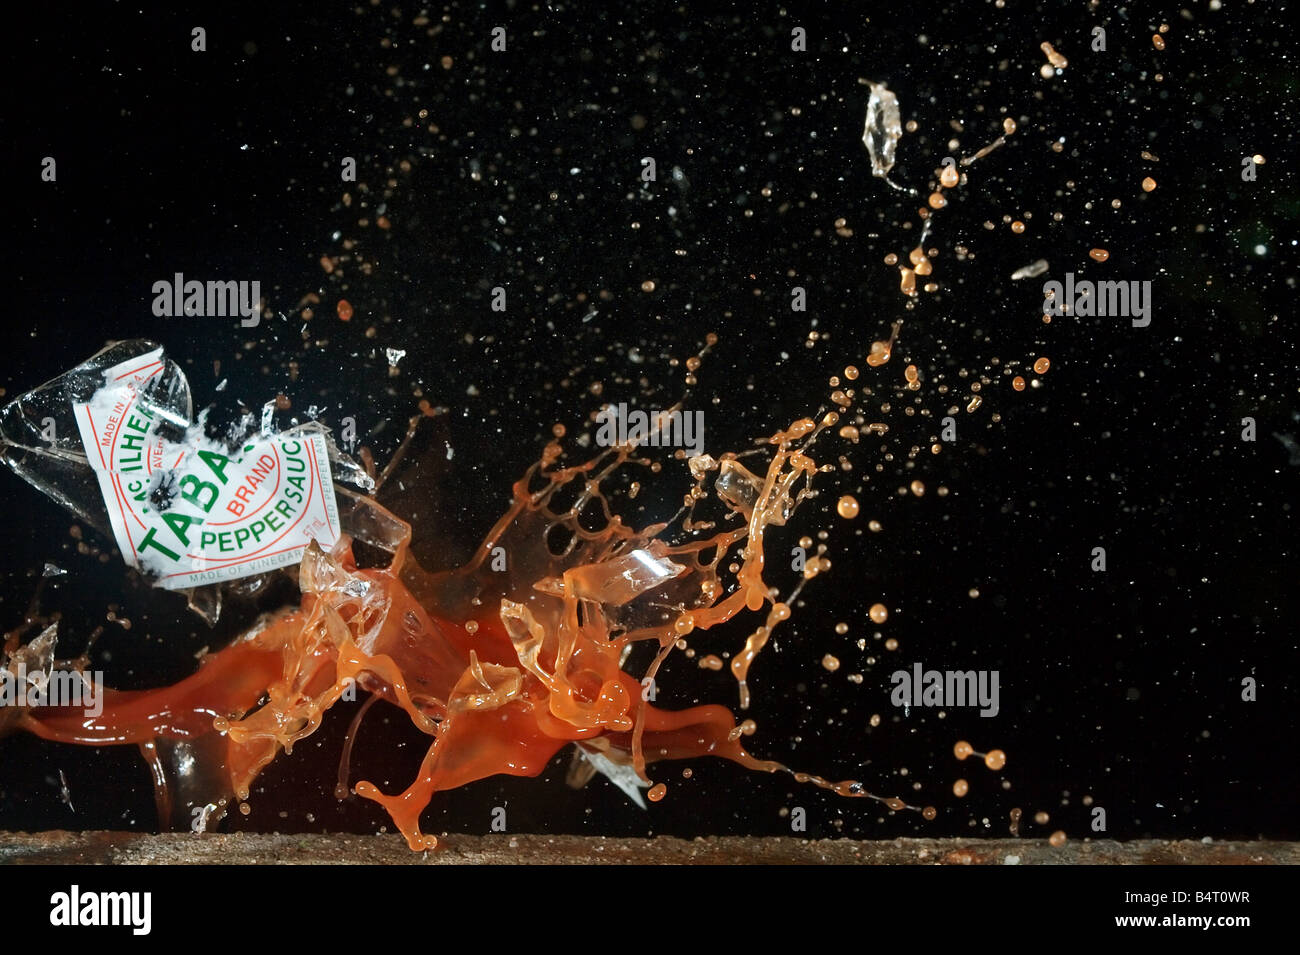 Bottle of Tabasco sauce gets smashed - Stock Image